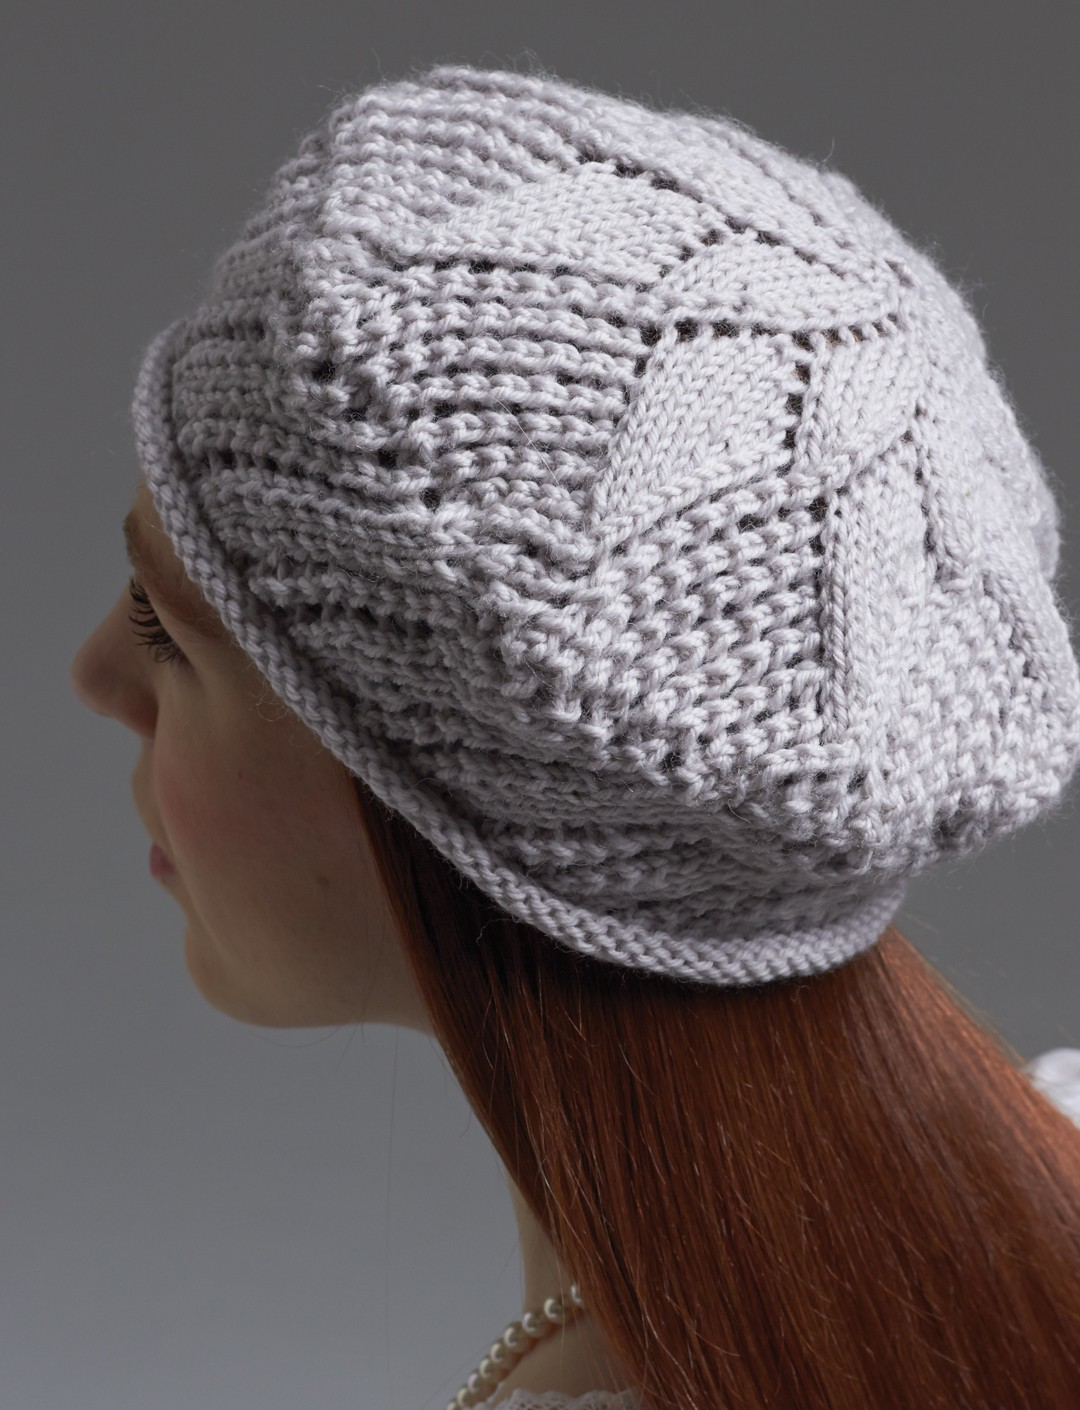 Free Crochet Patterns Using Patons Lace Yarn : Patons Lace Beret, Knit Pattern Yarnspirations